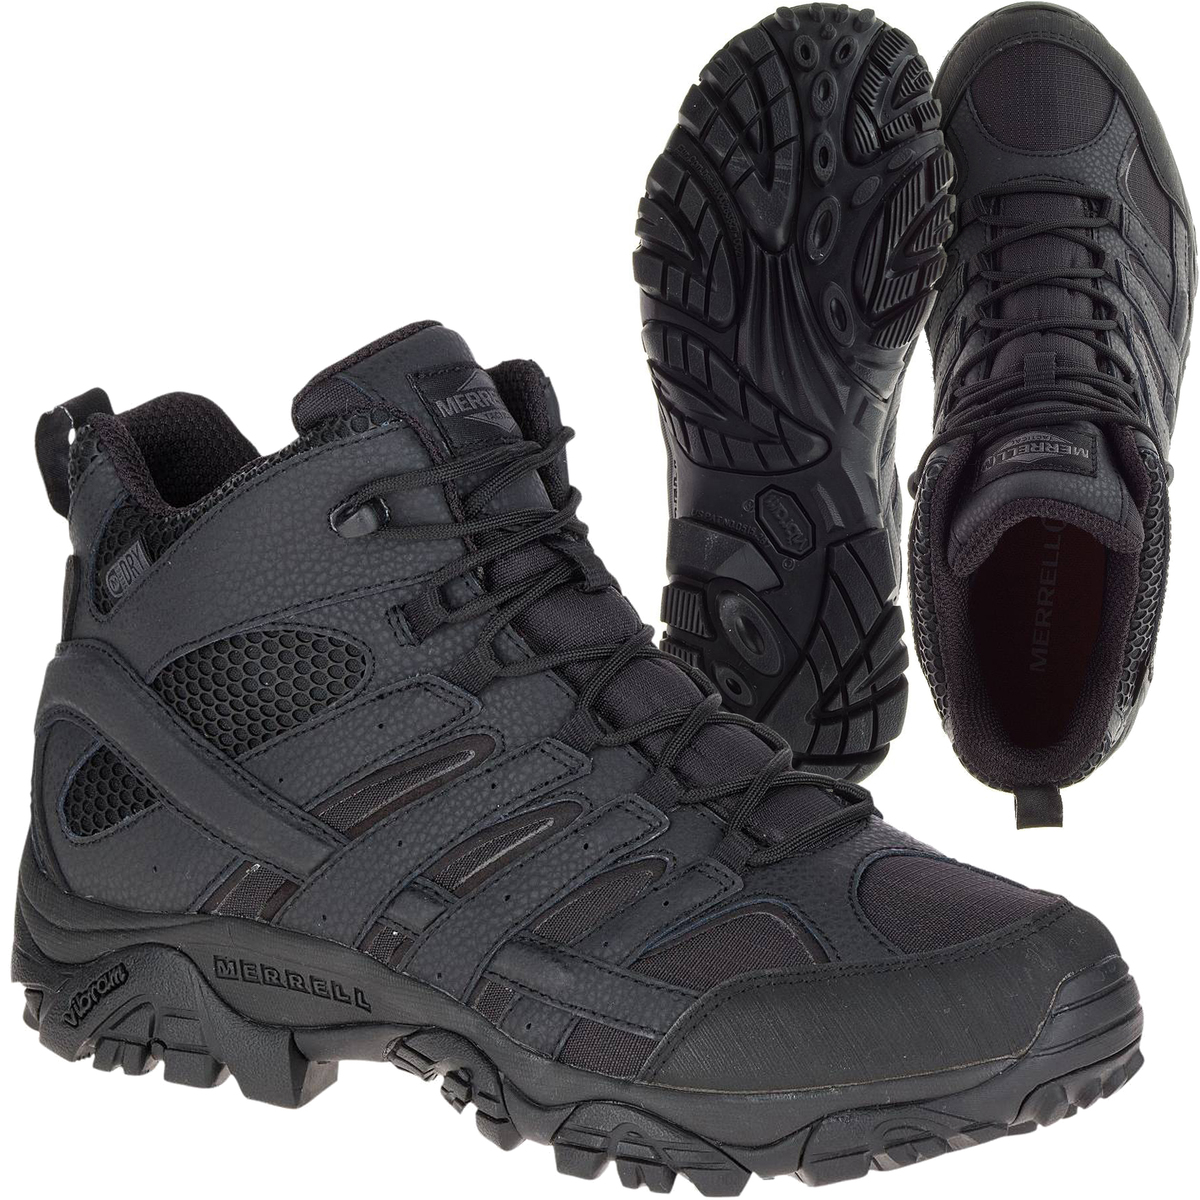 cfab63b6 Outdoor Tactical | Merrell Tactical Moab 2 Mid Tactical WP Boots - Black